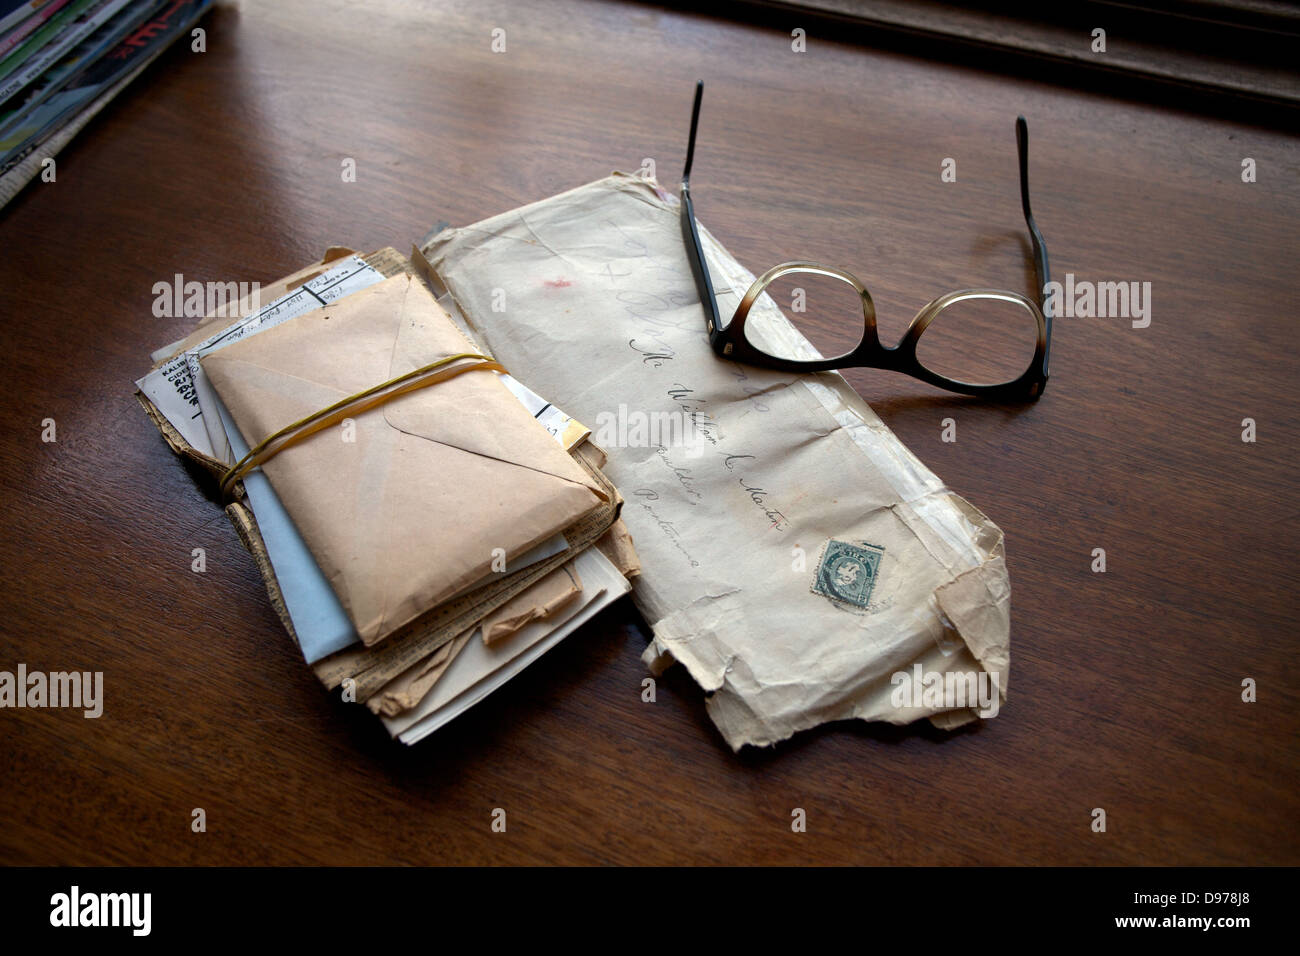 A selection of personal letters and a pair of reading glasses - Stock Image